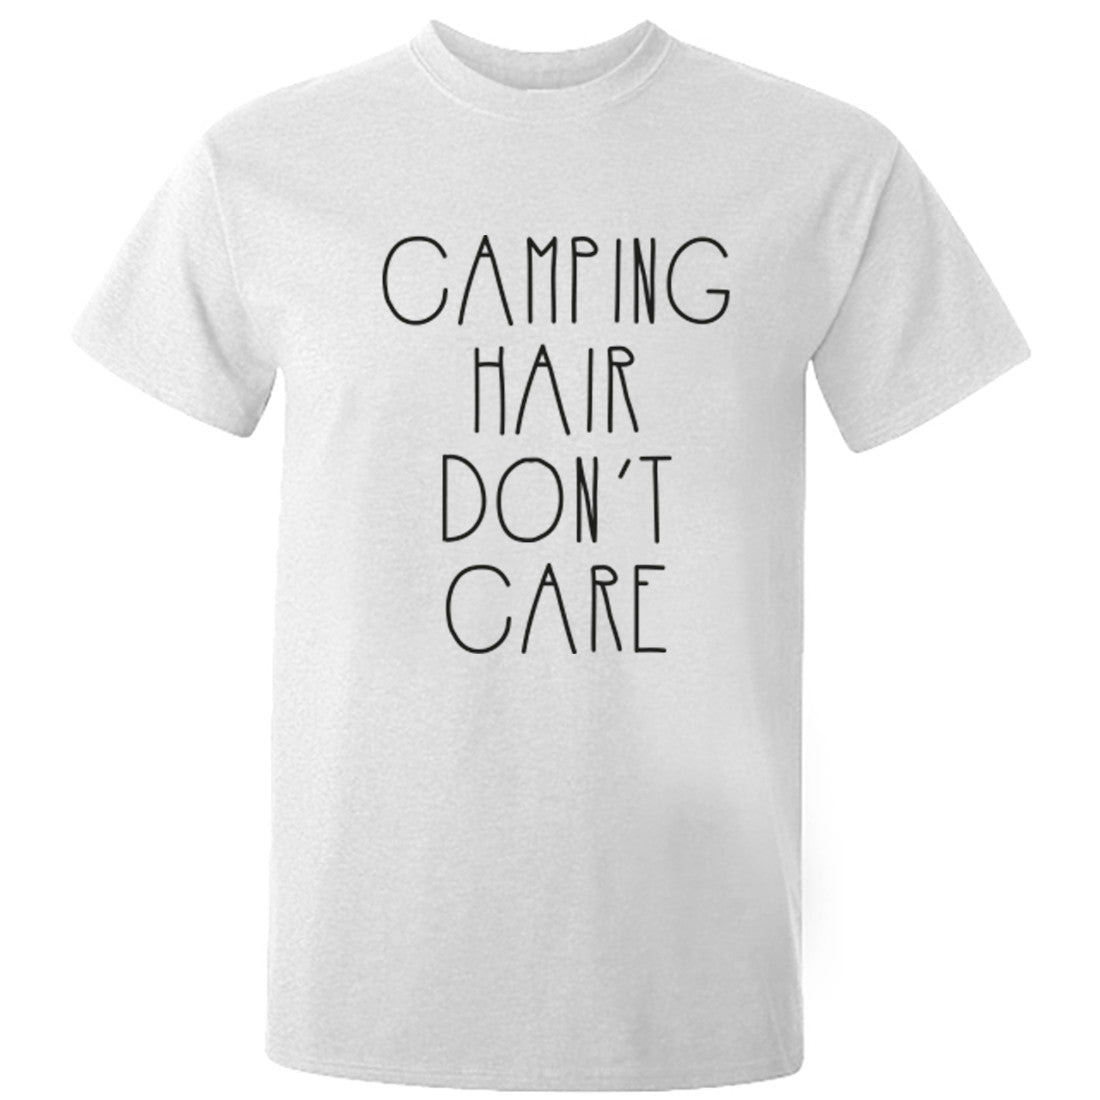 Camping Hair Don't Care Unisex Fit T-Shirt K0462 - Illustrated Identity Ltd.